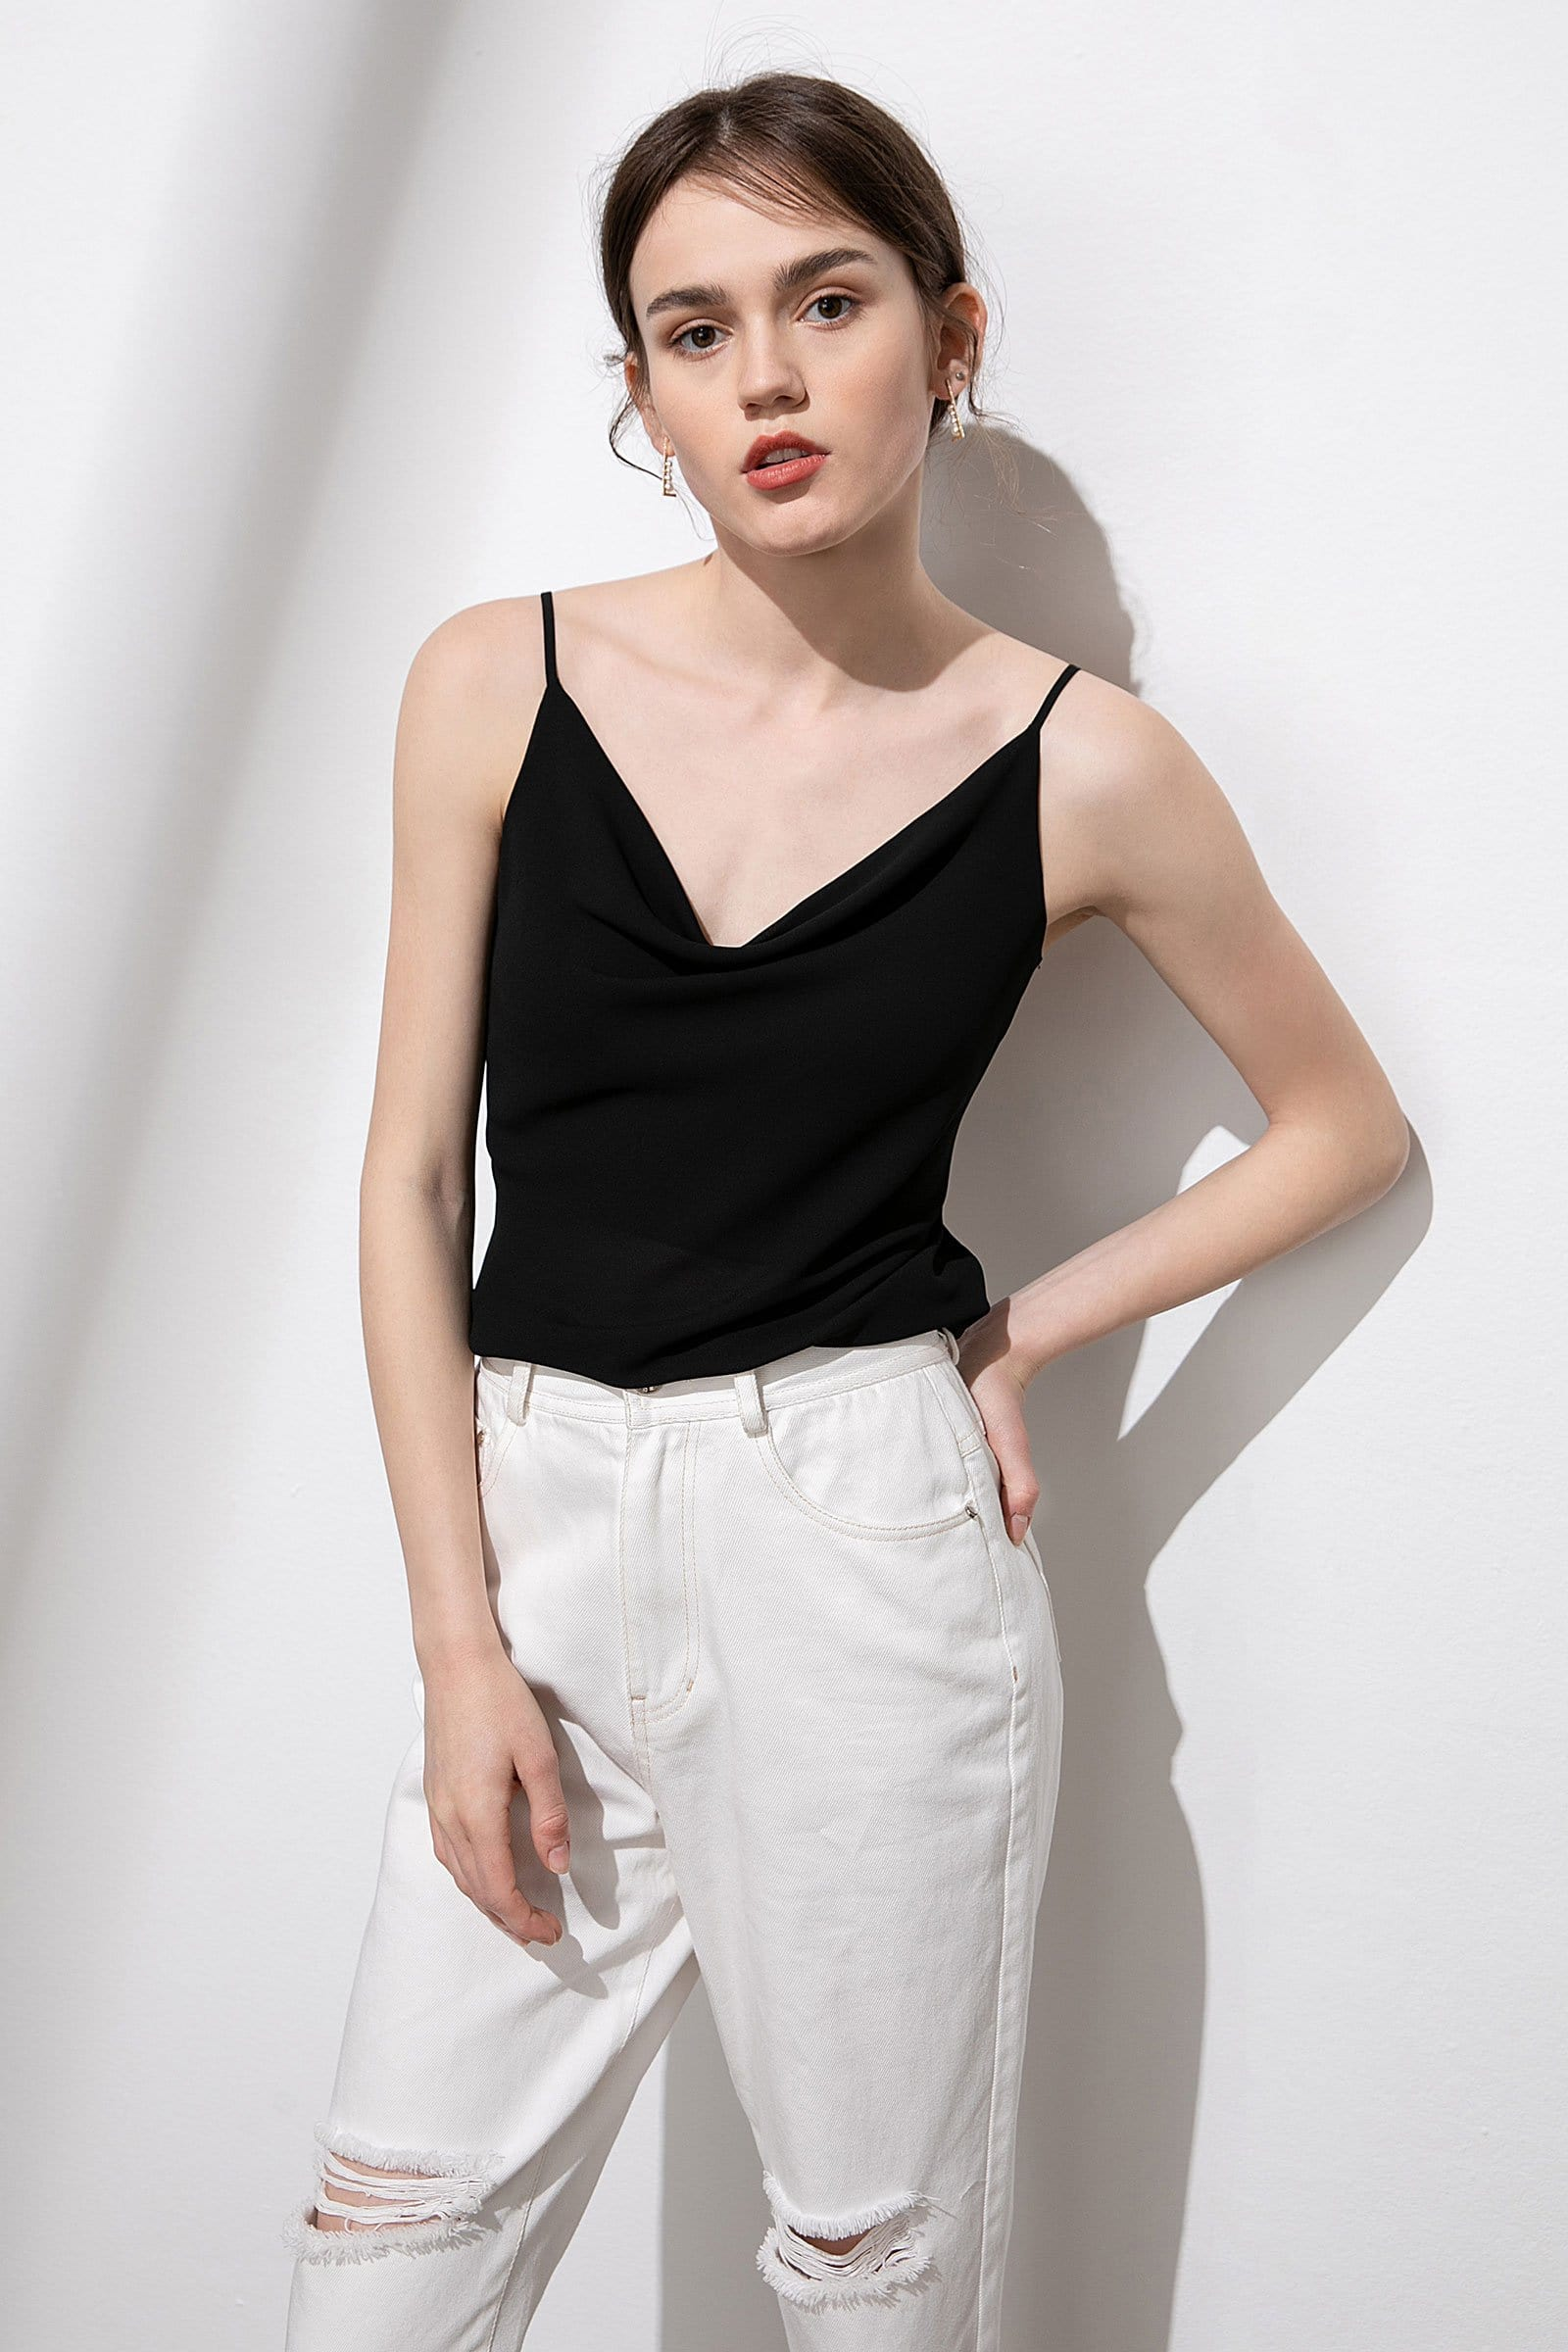 Safie Black Cowl Neck Silky Top